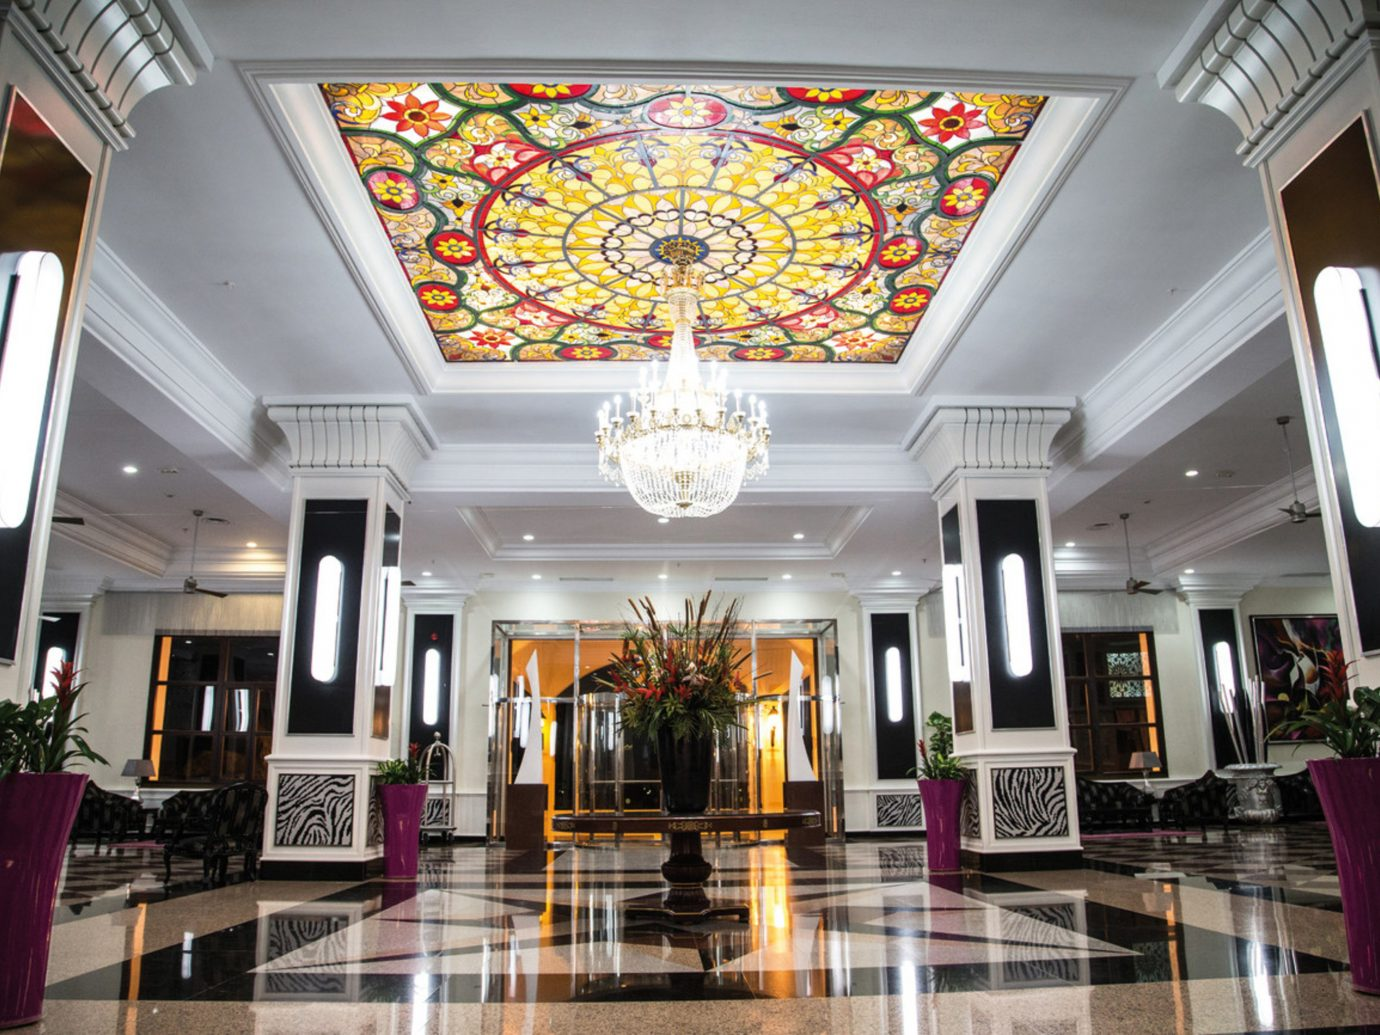 Hotels Lobby indoor building room estate interior design shopping mall ceiling function hall ballroom mansion palace hall furniture